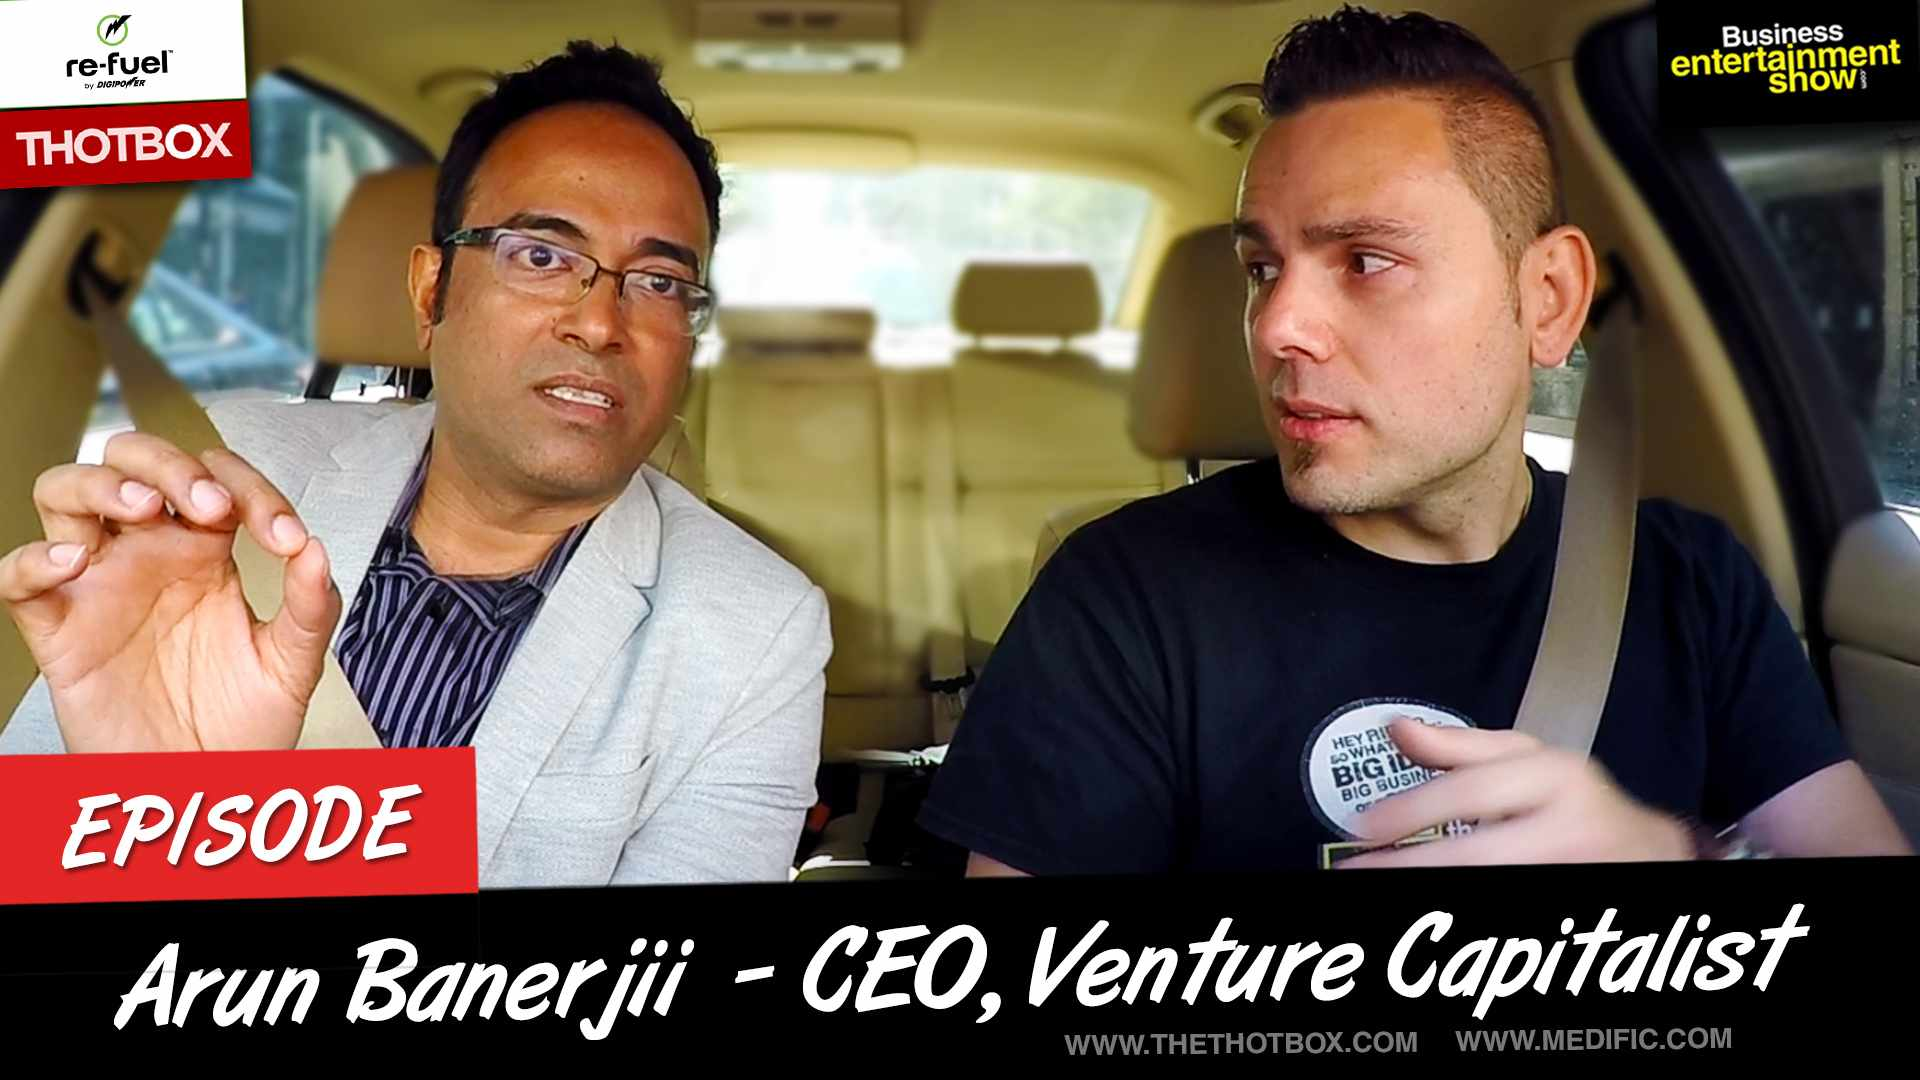 Entrepreneur Interview - Fintech CEO Arun Banerjii on Business Entertainment Show